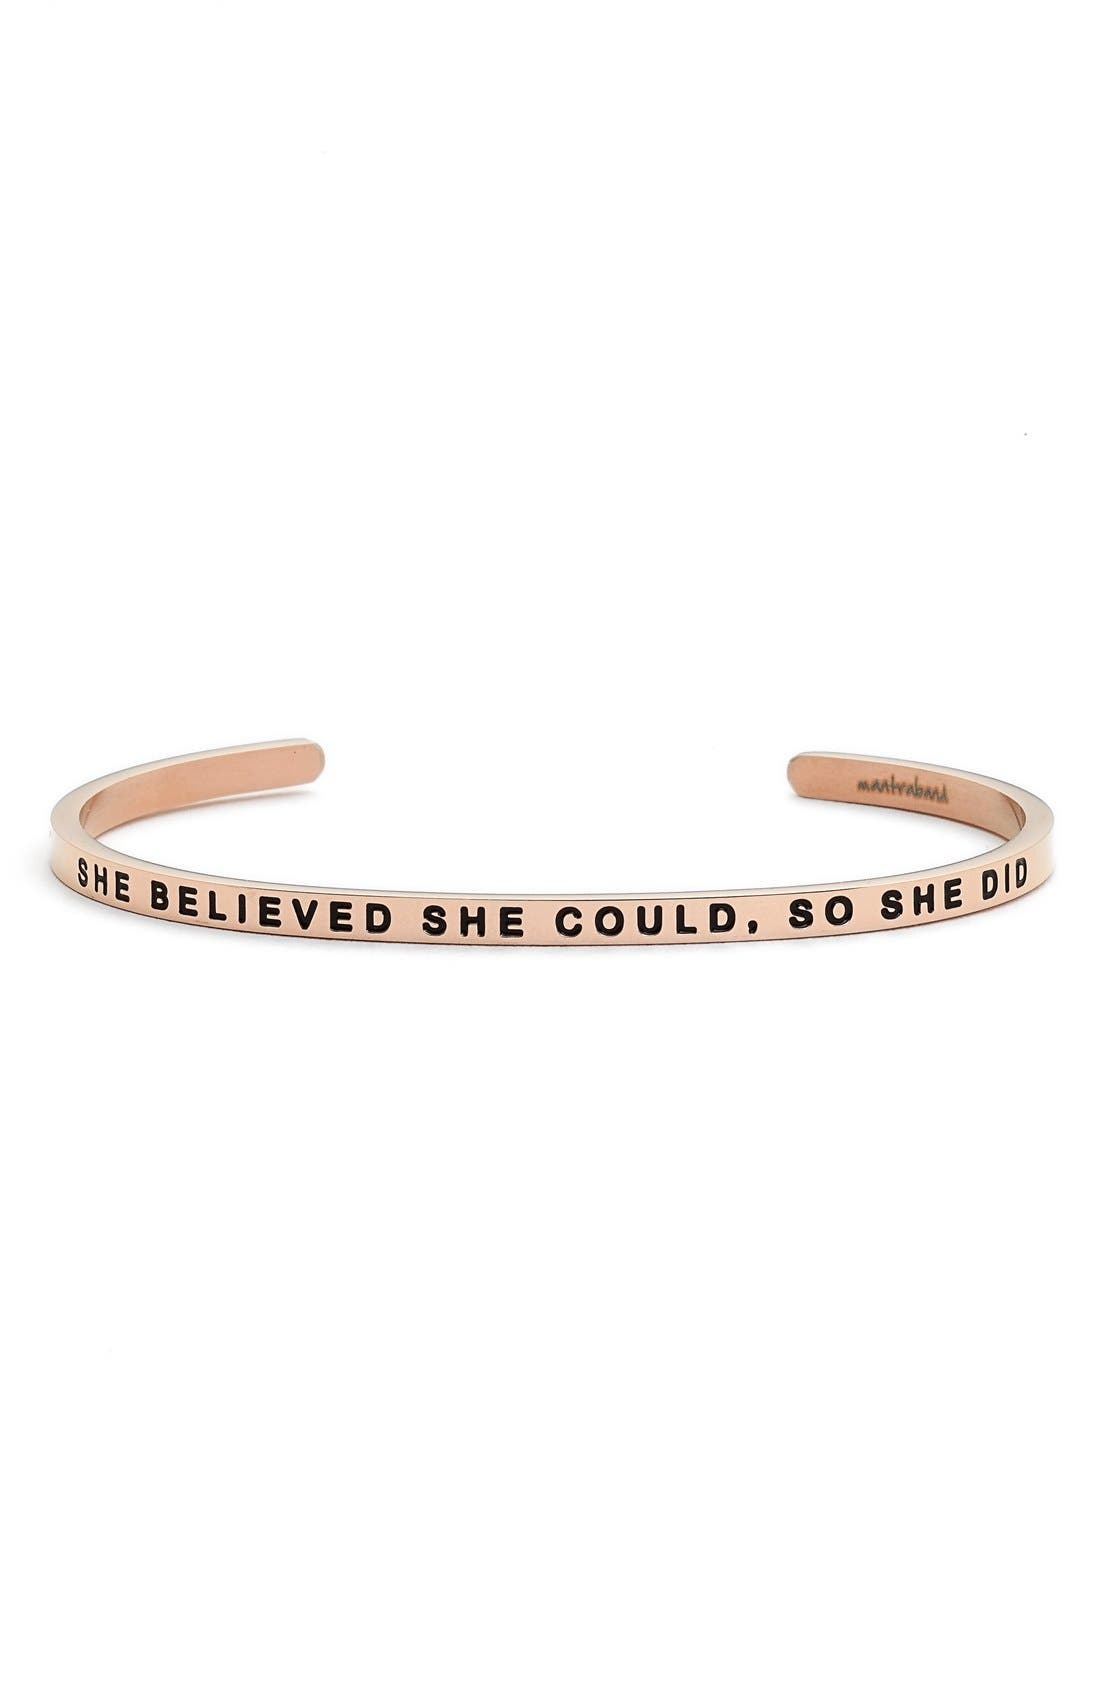 MantraBand® 'She Believed She Could' Cuff